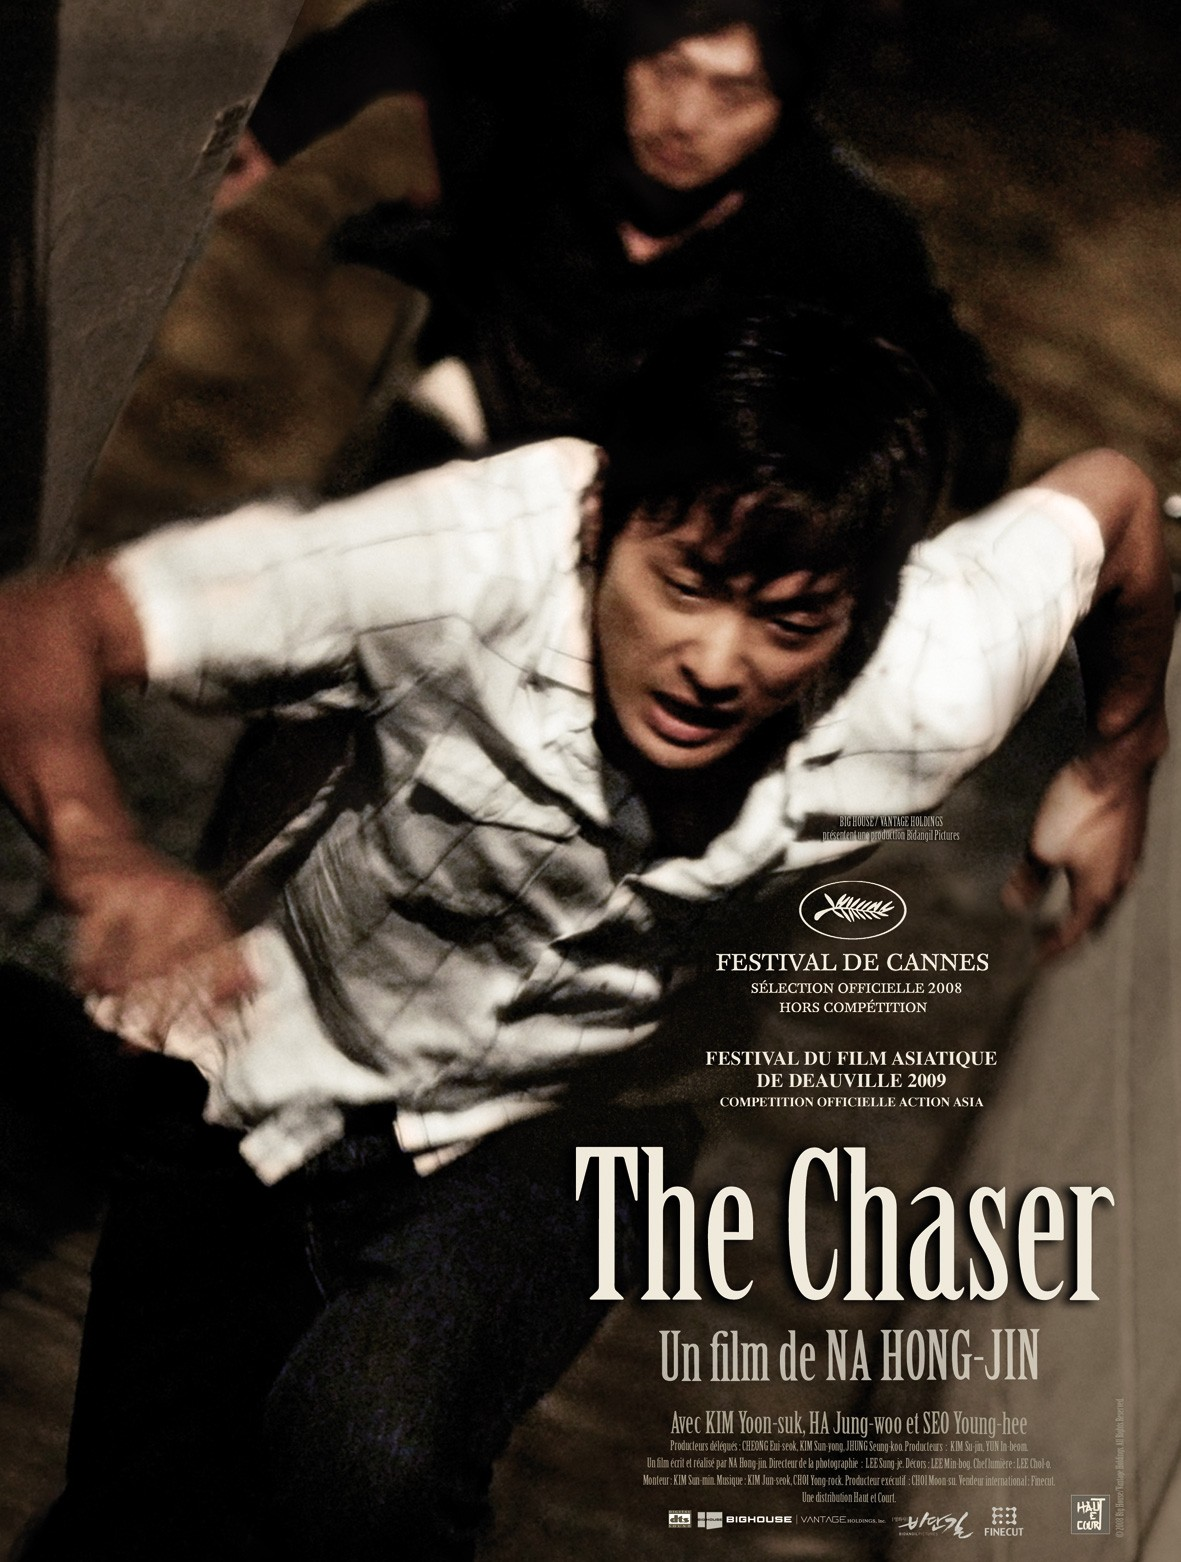 The Chaser (2008) de Na Hong-jin